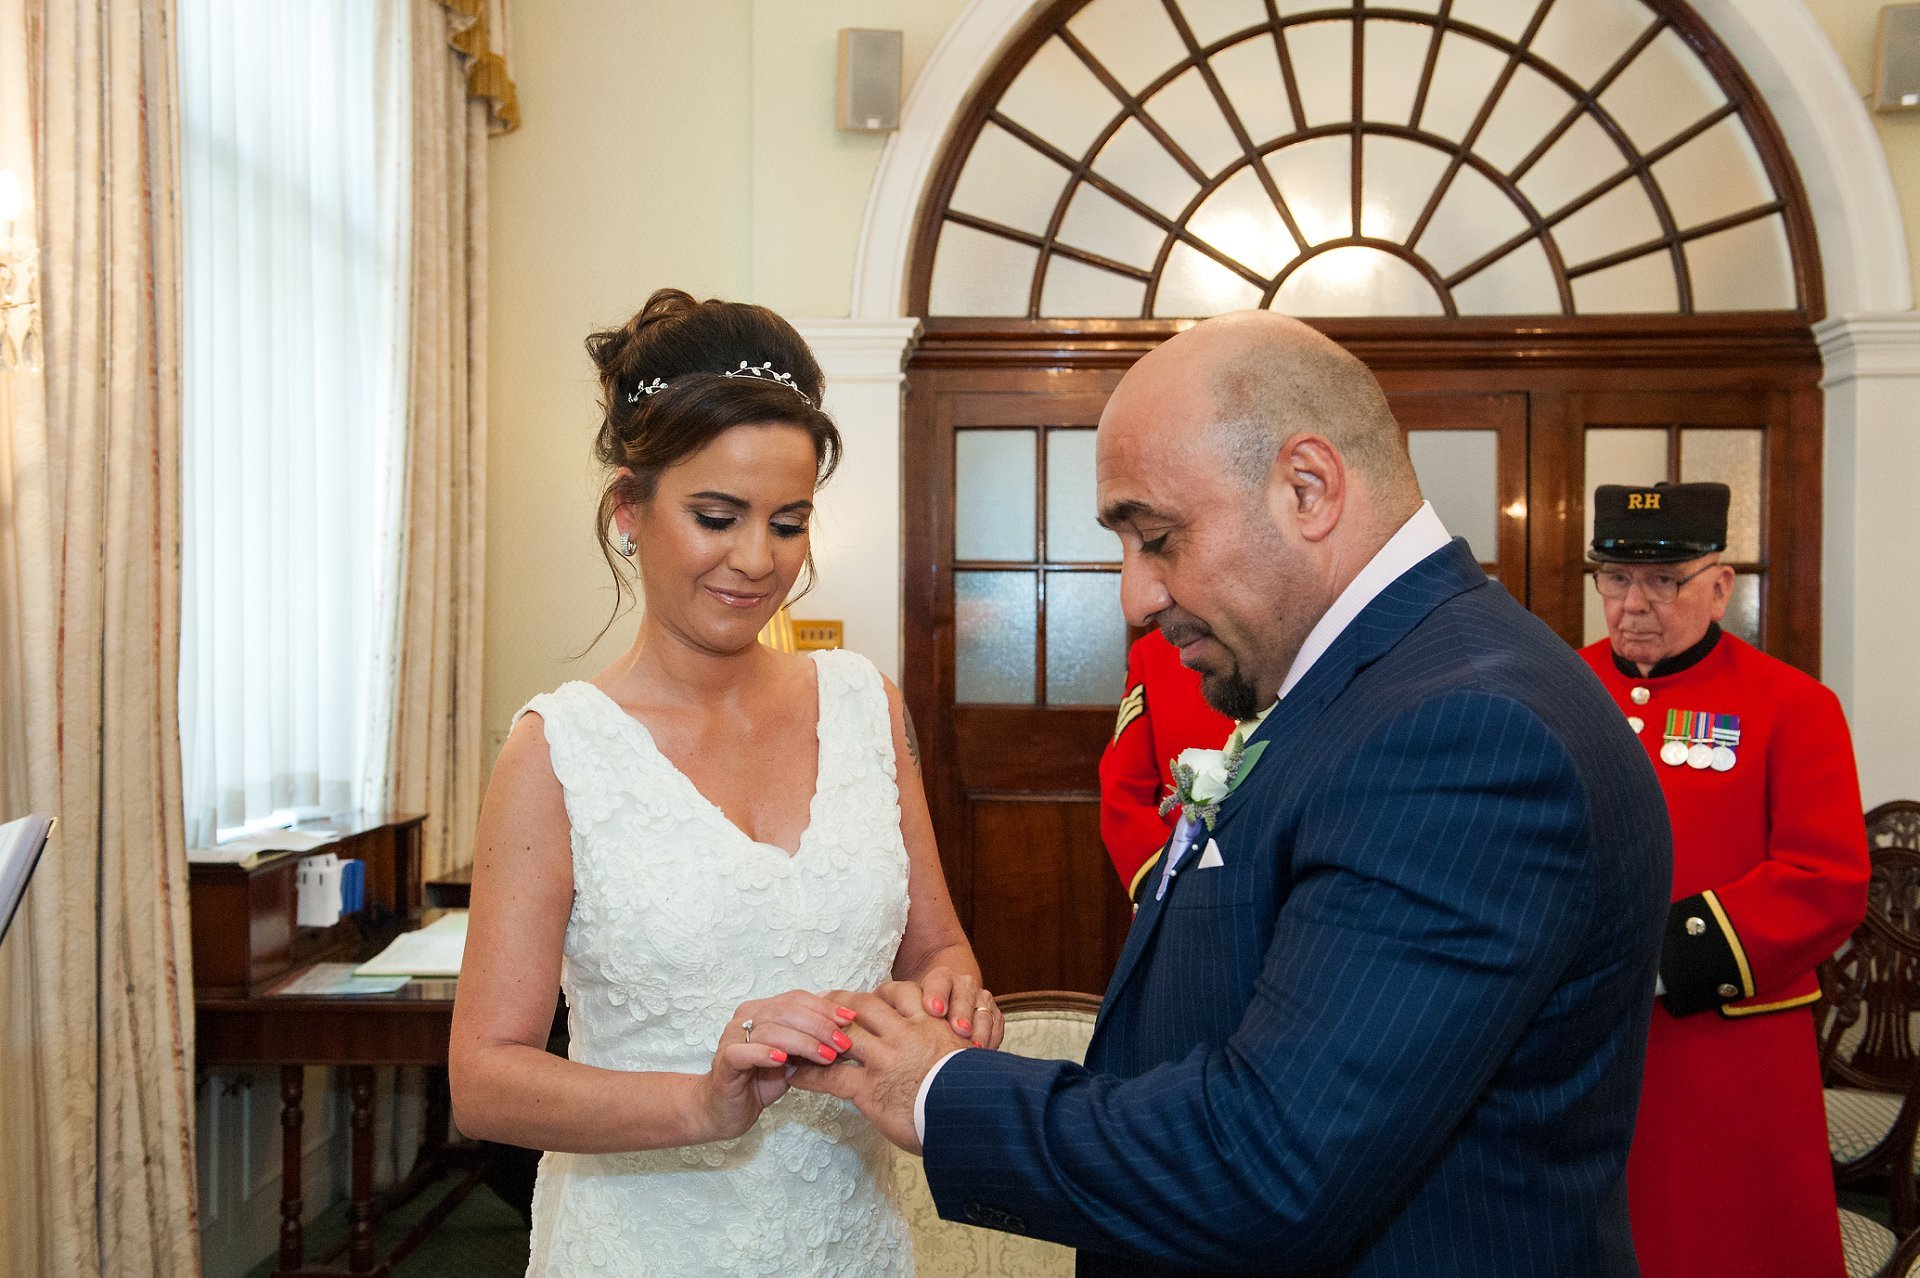 Bride Places Ring On Groom S Finger During Wedding Ceremony At Chelsea Registry Office